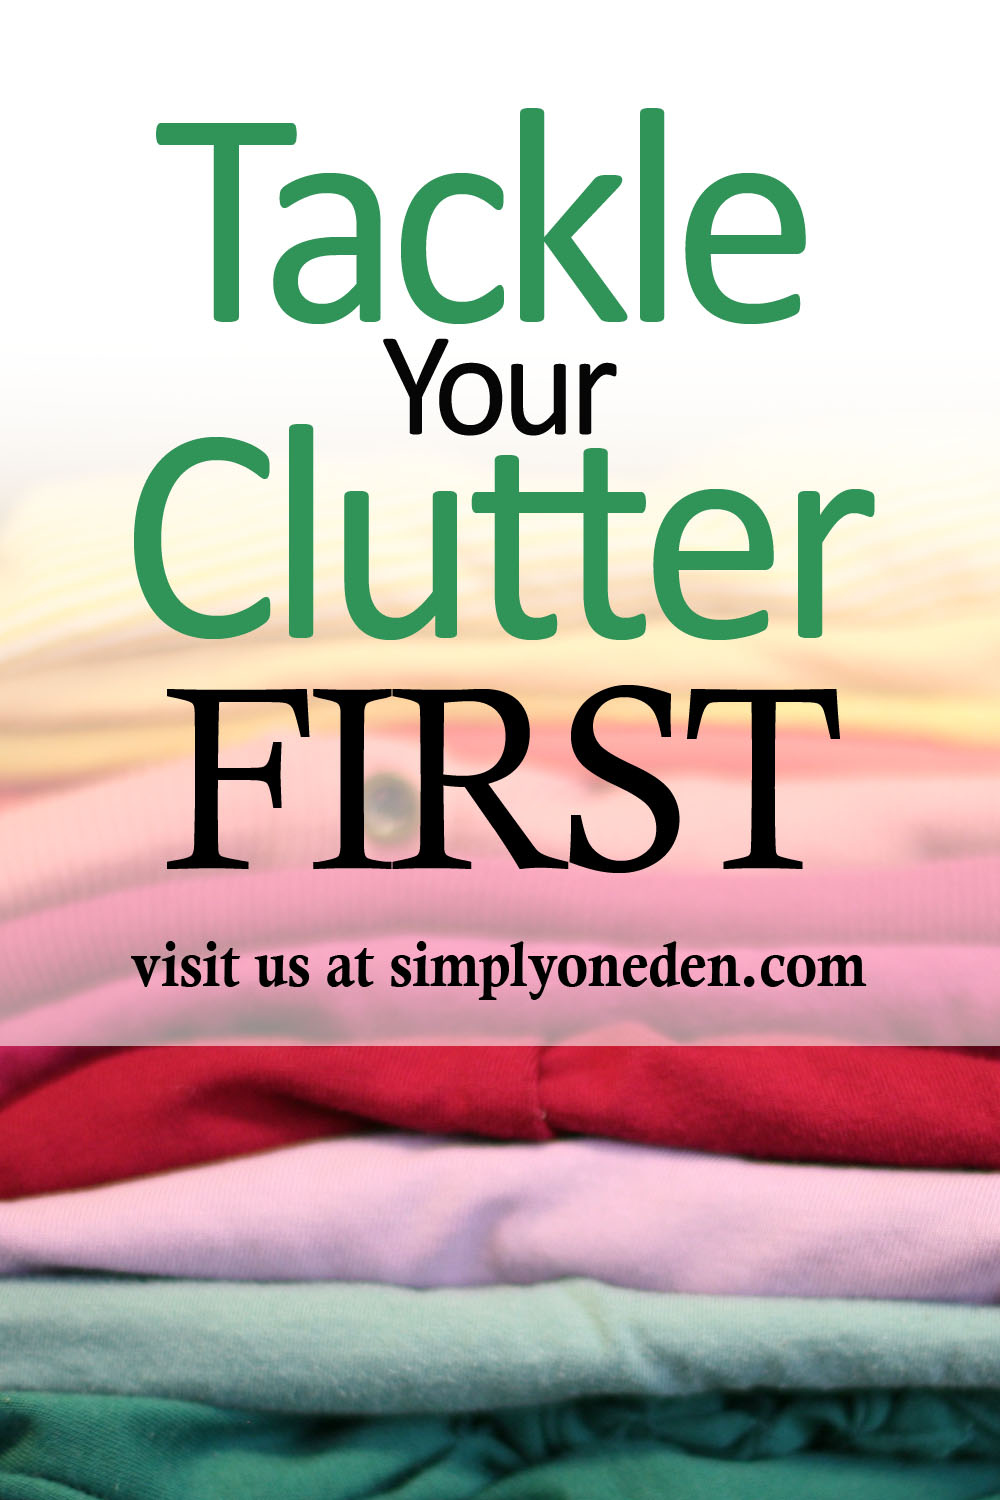 Tackle Your Clutter First